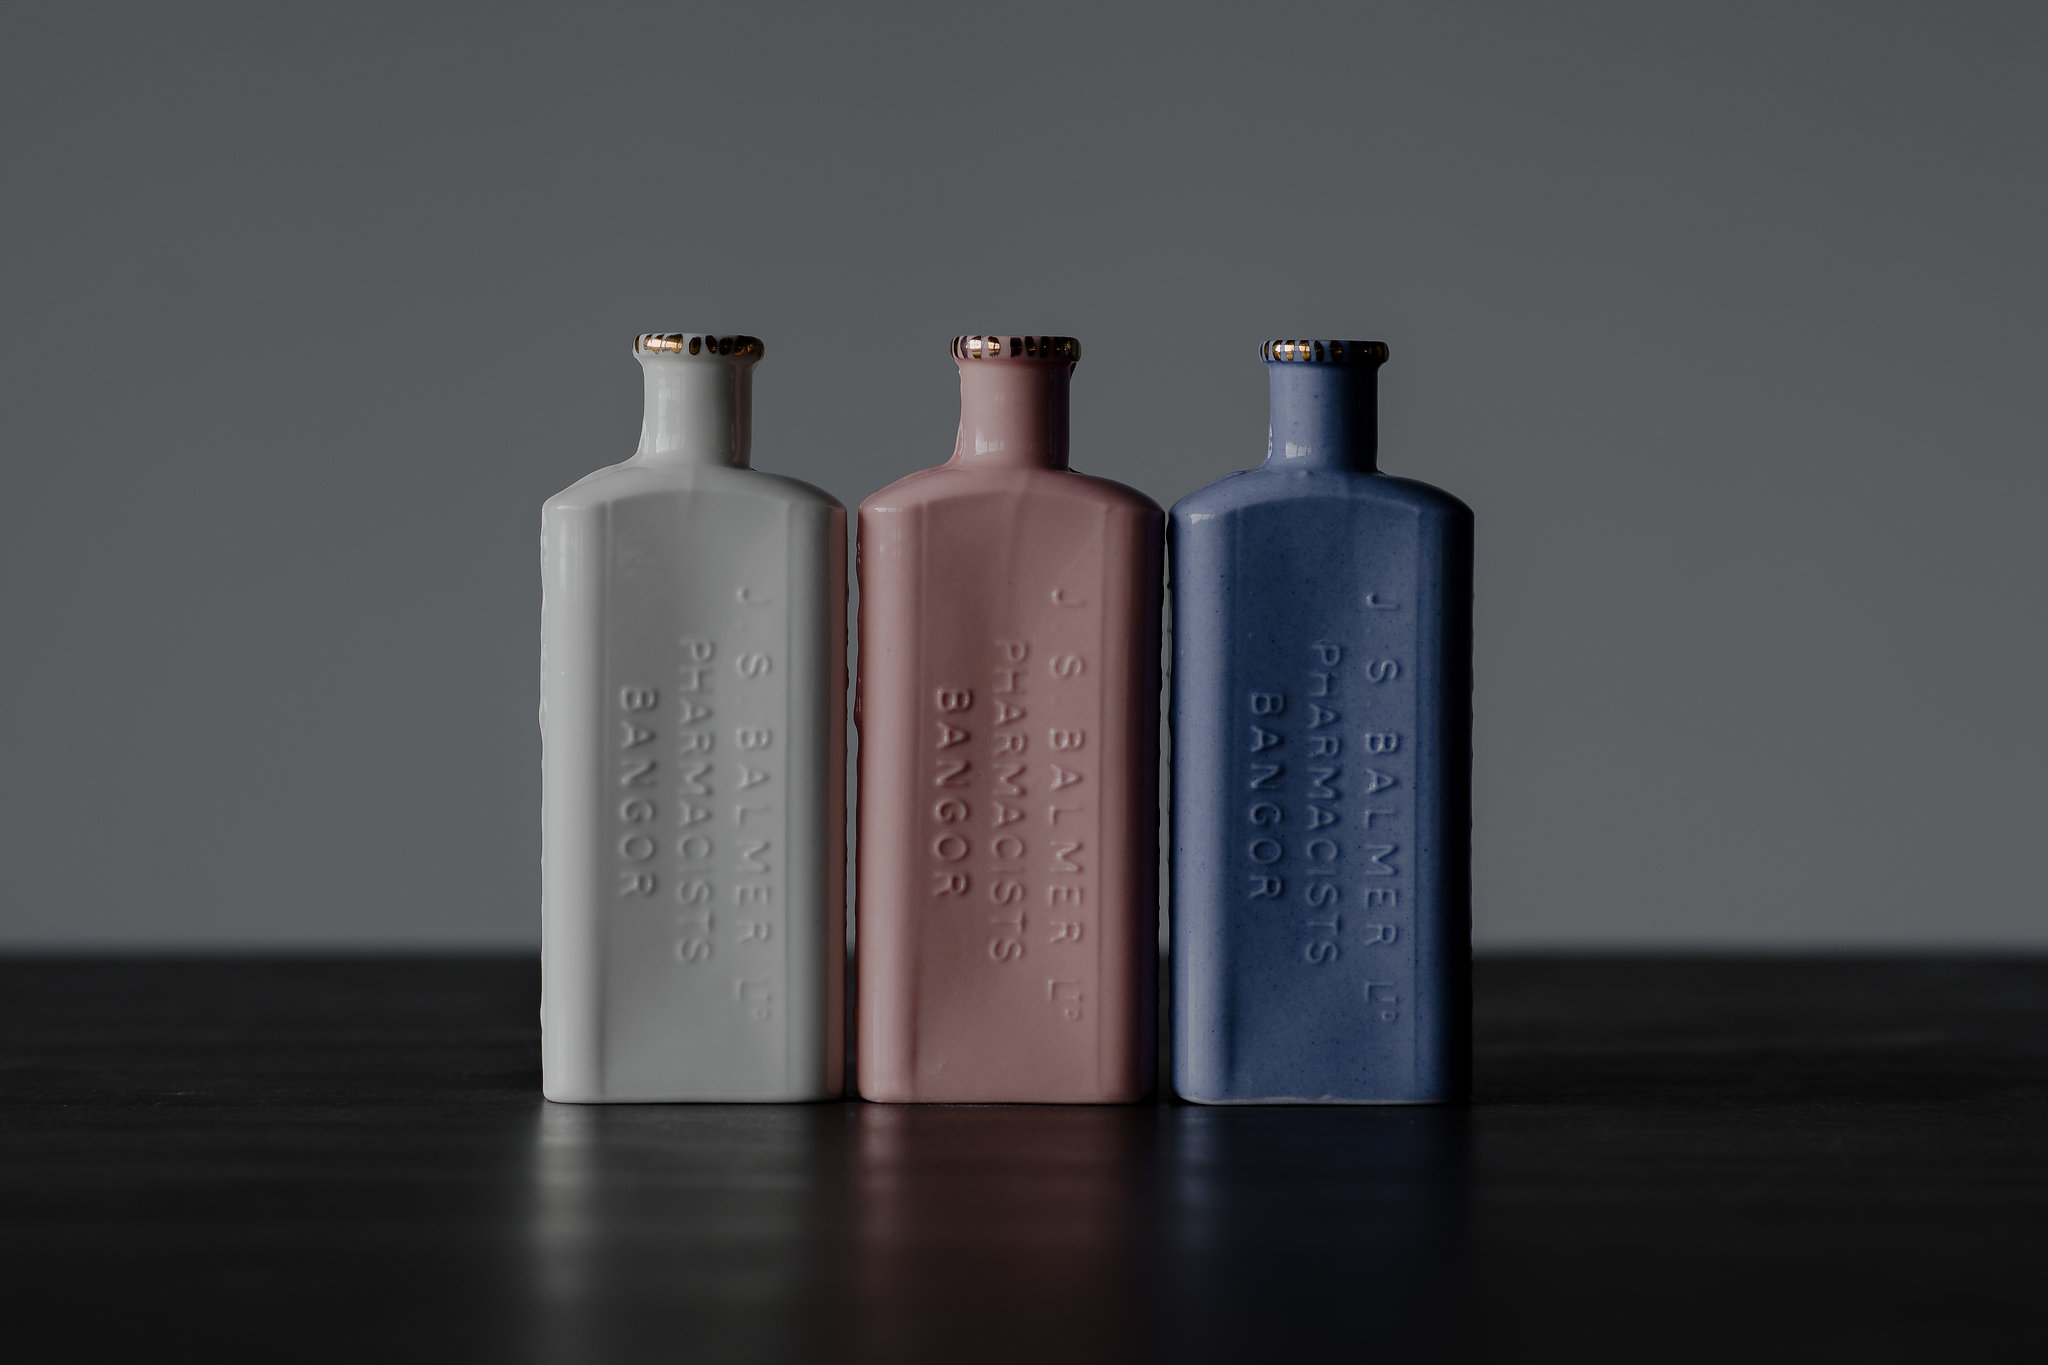 Introducing the Bangor Bottles, cast from a mould of a gorgeous rectangular pharmacist bottle, if only our medicine still came like this.